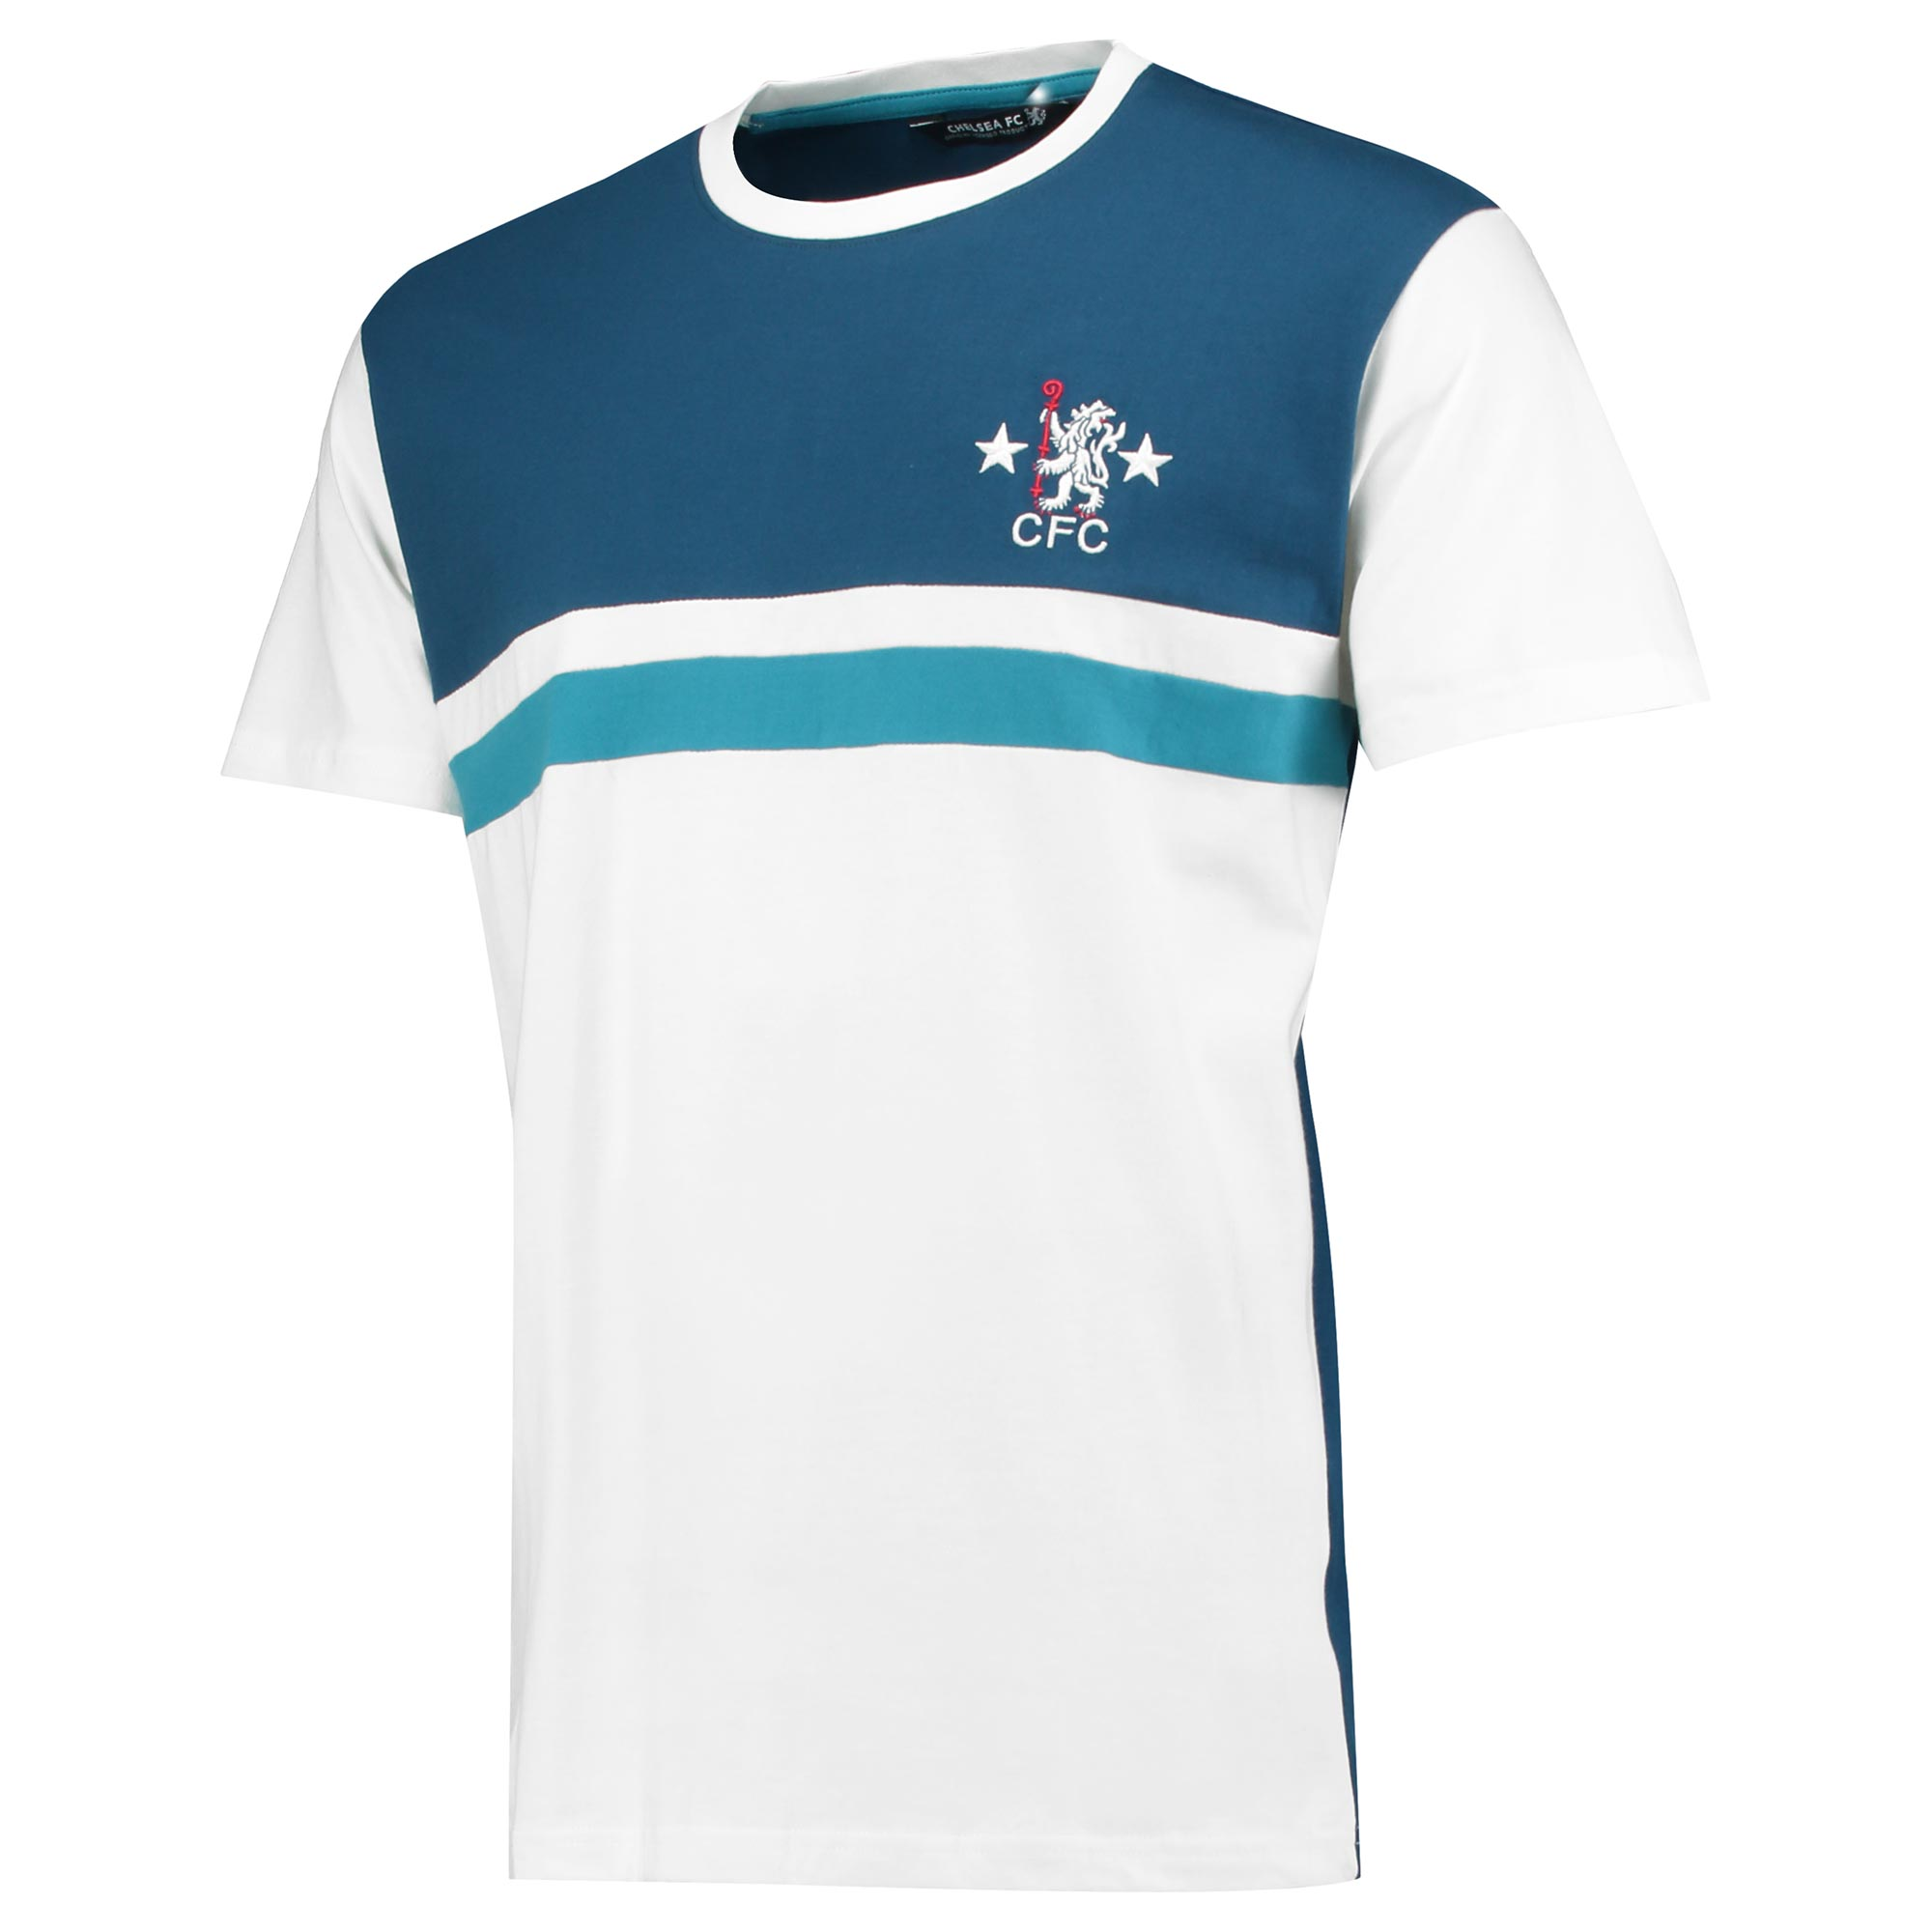 Chelsea Retro Cut & Sew T-Shirt - White – Men's   Put your love of the Blues on full display in this official Chelsea Retro Cut & Sew T-Shirt.   Featuring embroidery application on the chest, this raglan tee is the ideal choice for a fan.   Details: • 100% cotton S/Jersey 180gms  • Embroidery application